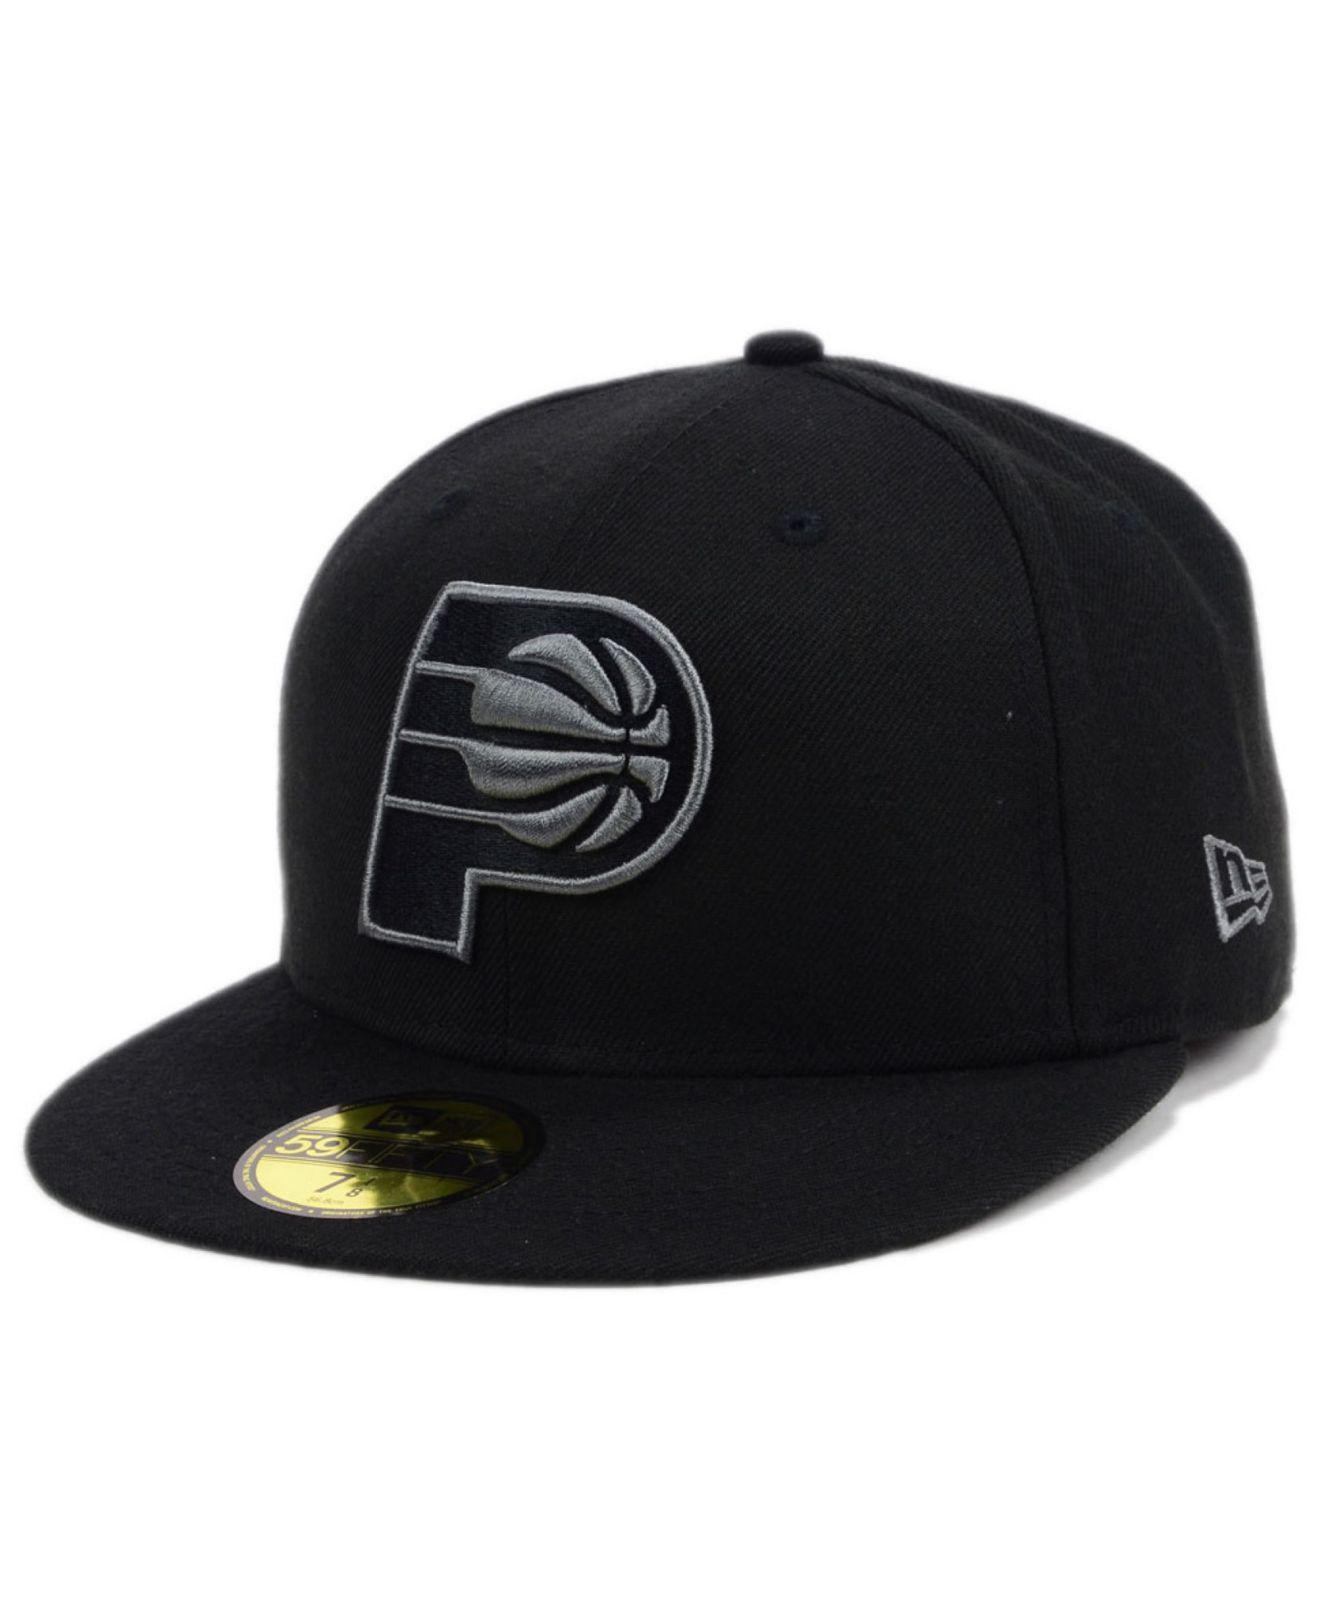 promo code 82460 996a1 ... where can i buy ktz indiana pacers black graph 59fifty cap for men lyst.  view